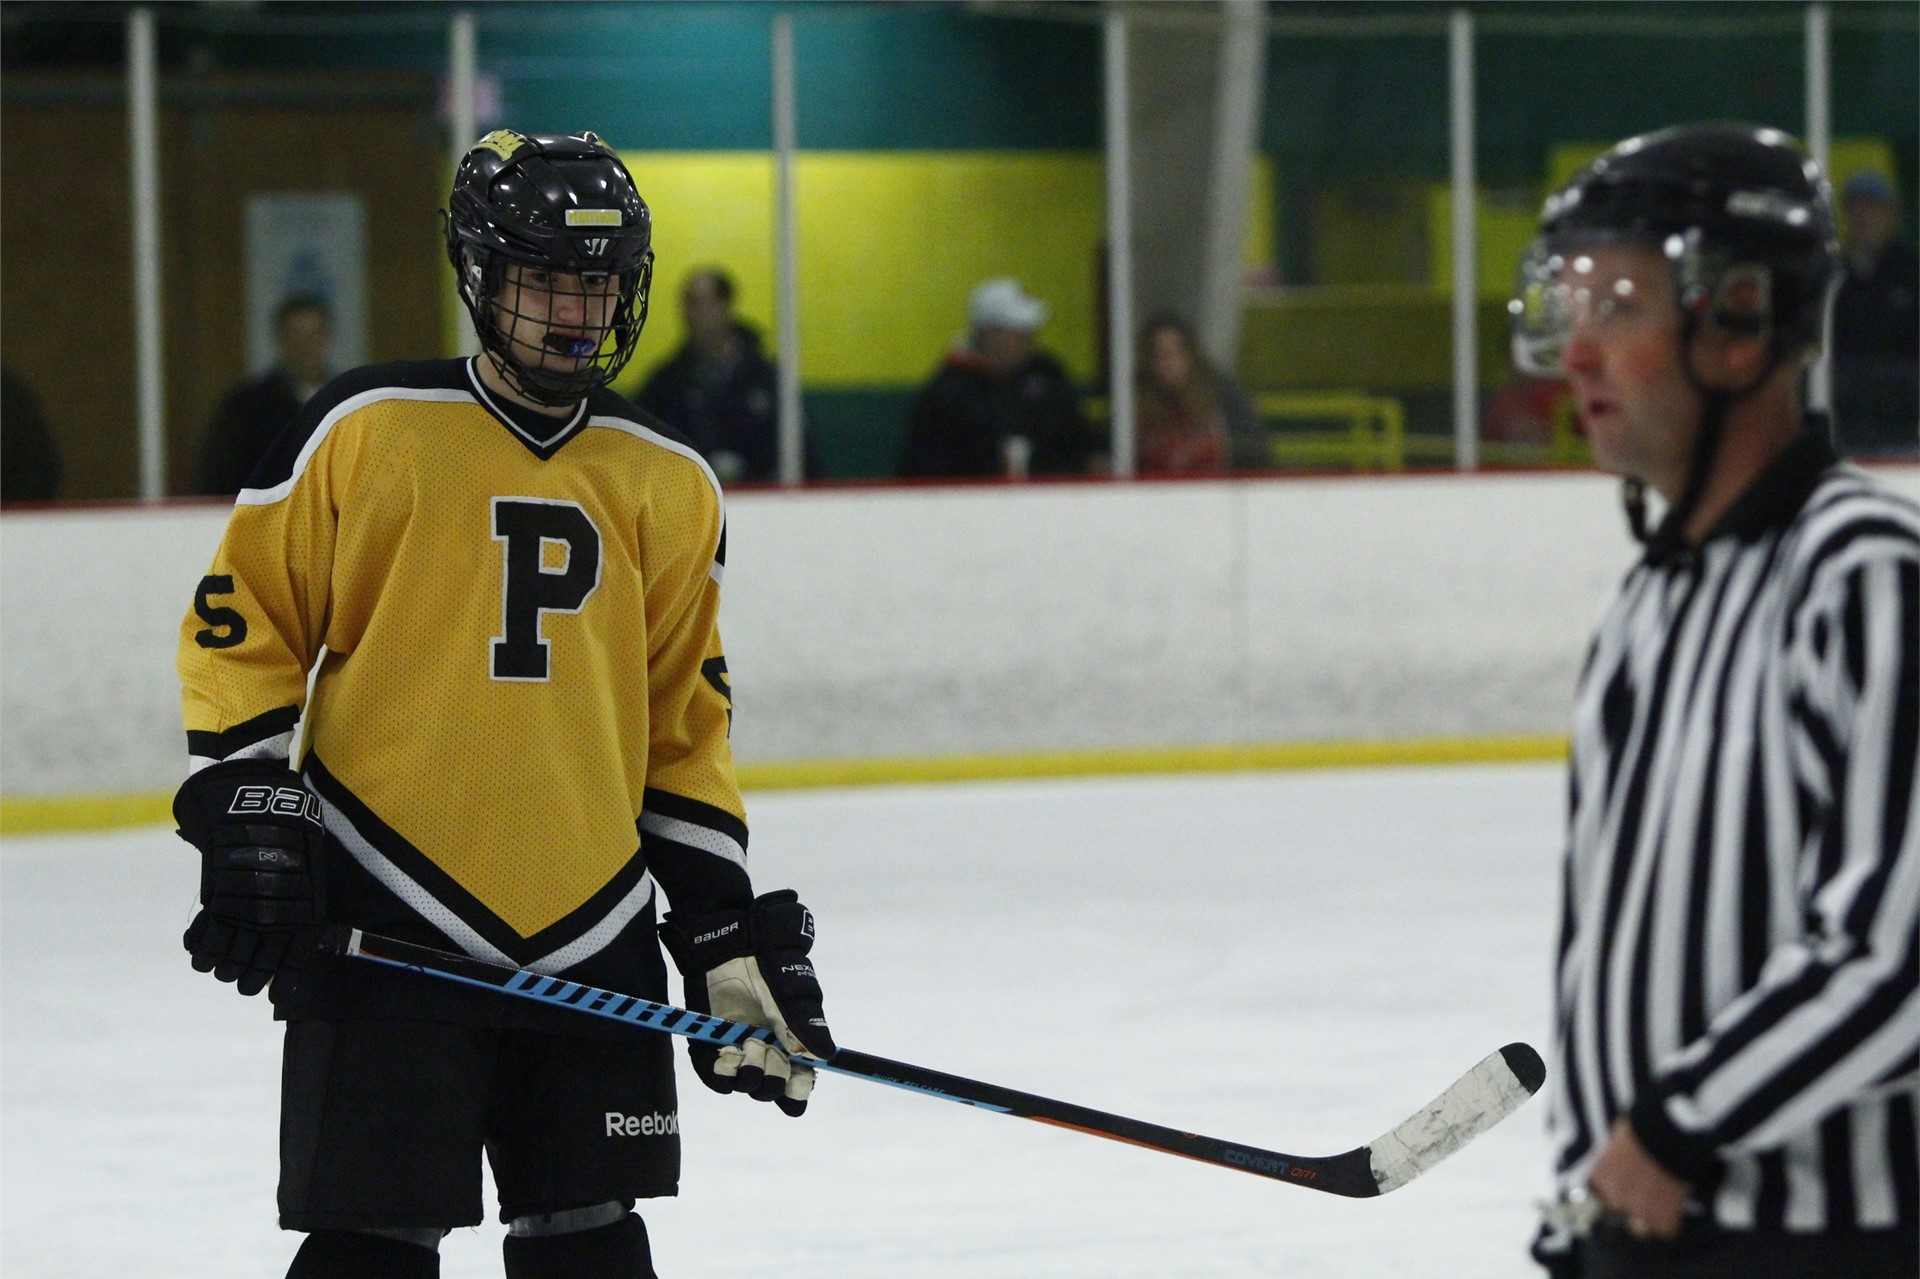 PHS student athlete skating to the bench